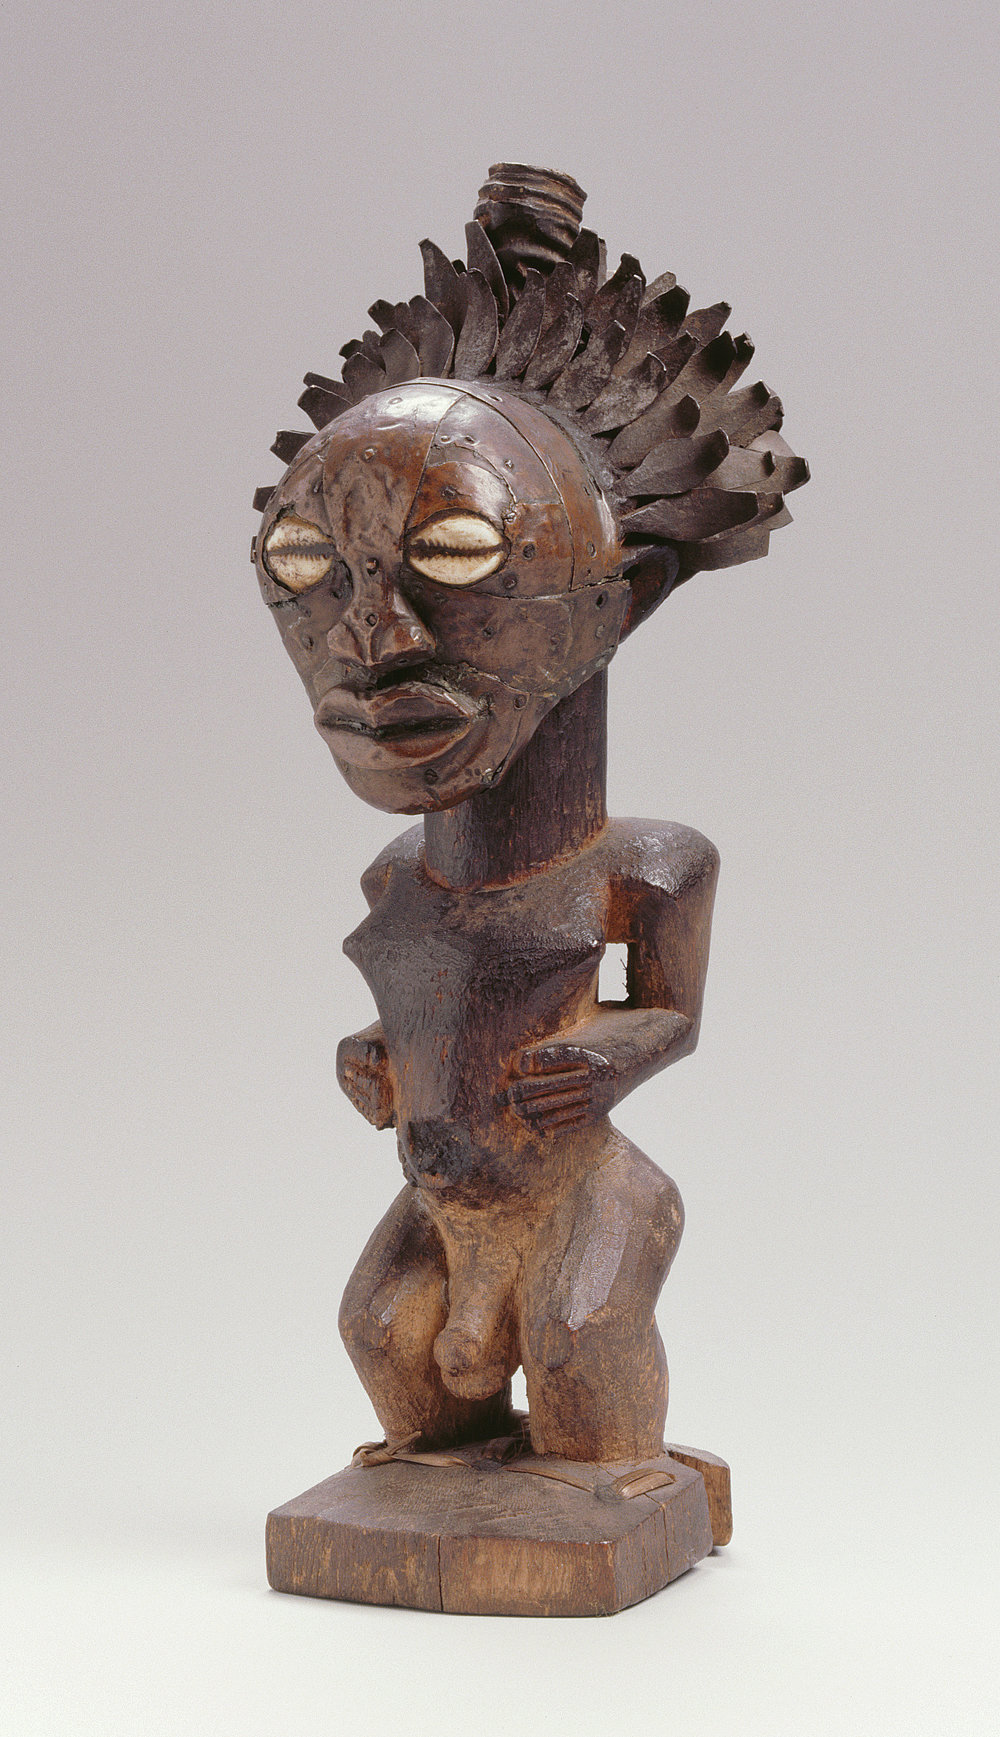 "Artist Unknown (Songye peoples, Democratic Republic of the Congo), Nkishi figure, mid to late 19th century, wood, forged iron, copper alloy, cowrie shell, horn, H: 28.5 cm, W: 12 cm. Collection of the MAS, Antwerp, Belgium (AE.0720), Gift of Louis Franck, Antwerp, 1920. Image © MAS | Museum aan de Stroom, Antwerpen. Photograph Michel Wuyts, 2016. Provenance: Field collected in 1920 by Louis Franck (1868-1937). Selected for the Belgian Pavilion at the New York World's Fair of 1939, nicknamed ""the man with iron hair."""